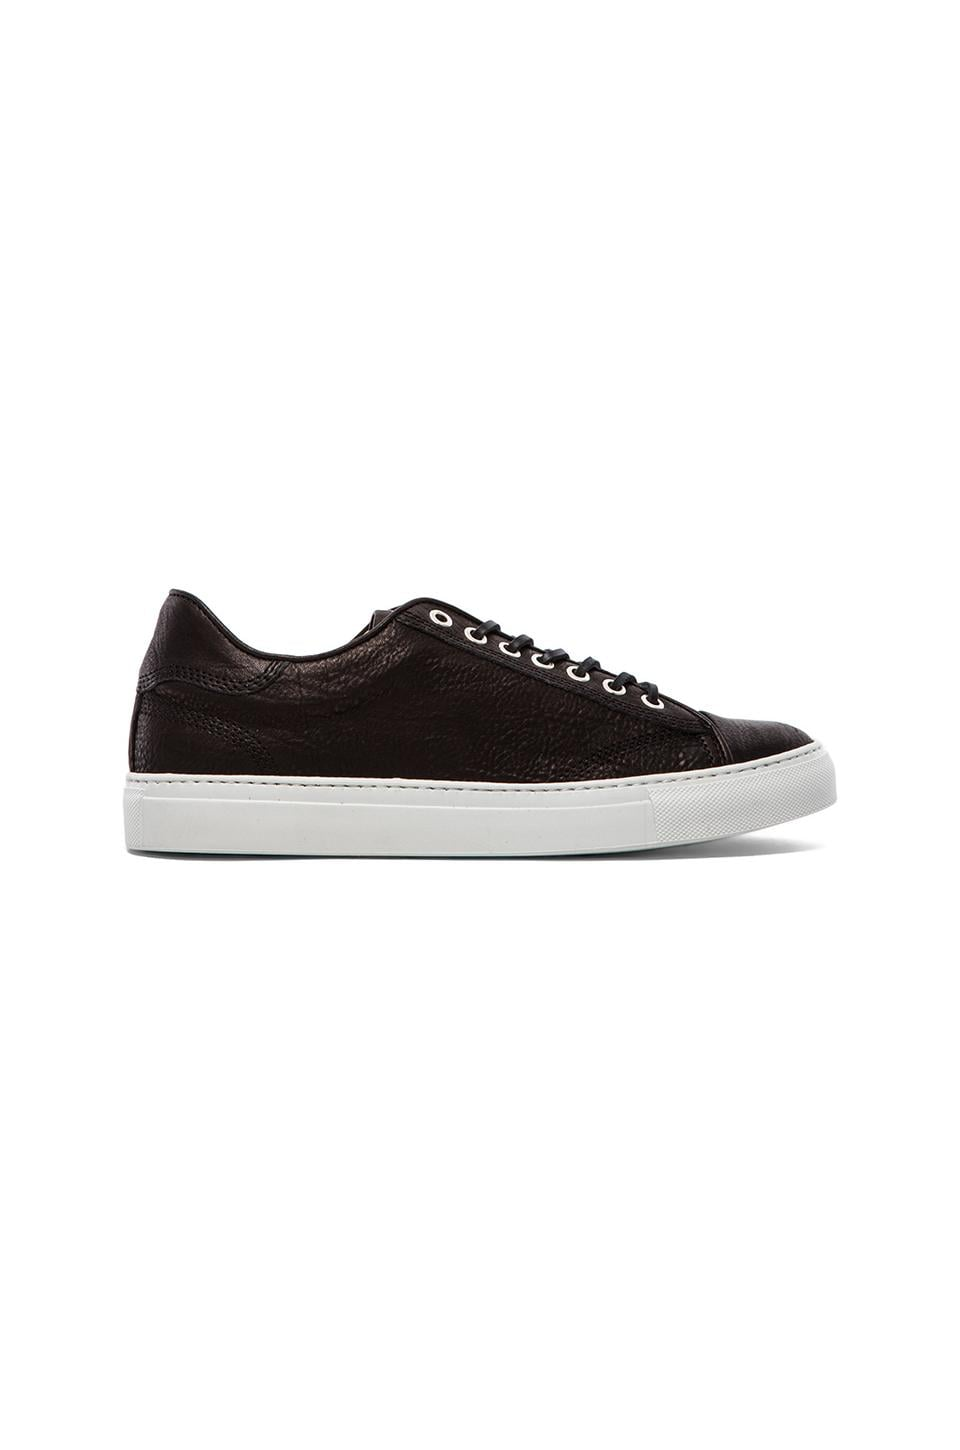 wings + horns Leather Low Top in Black & White